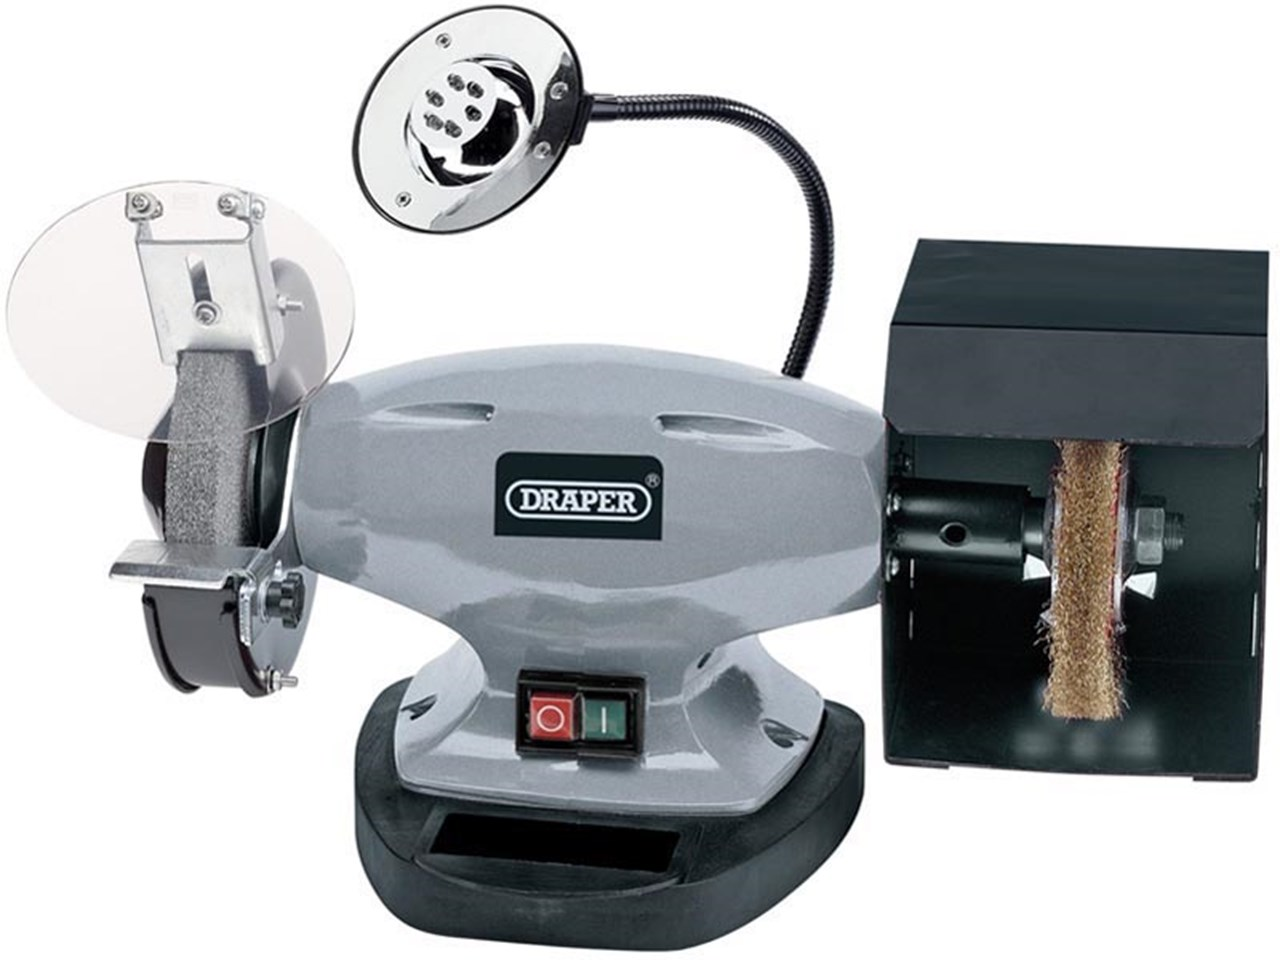 DRAPER 14271 150mm 370W 230V Bench Grinder with Wire Wheel and LED ...